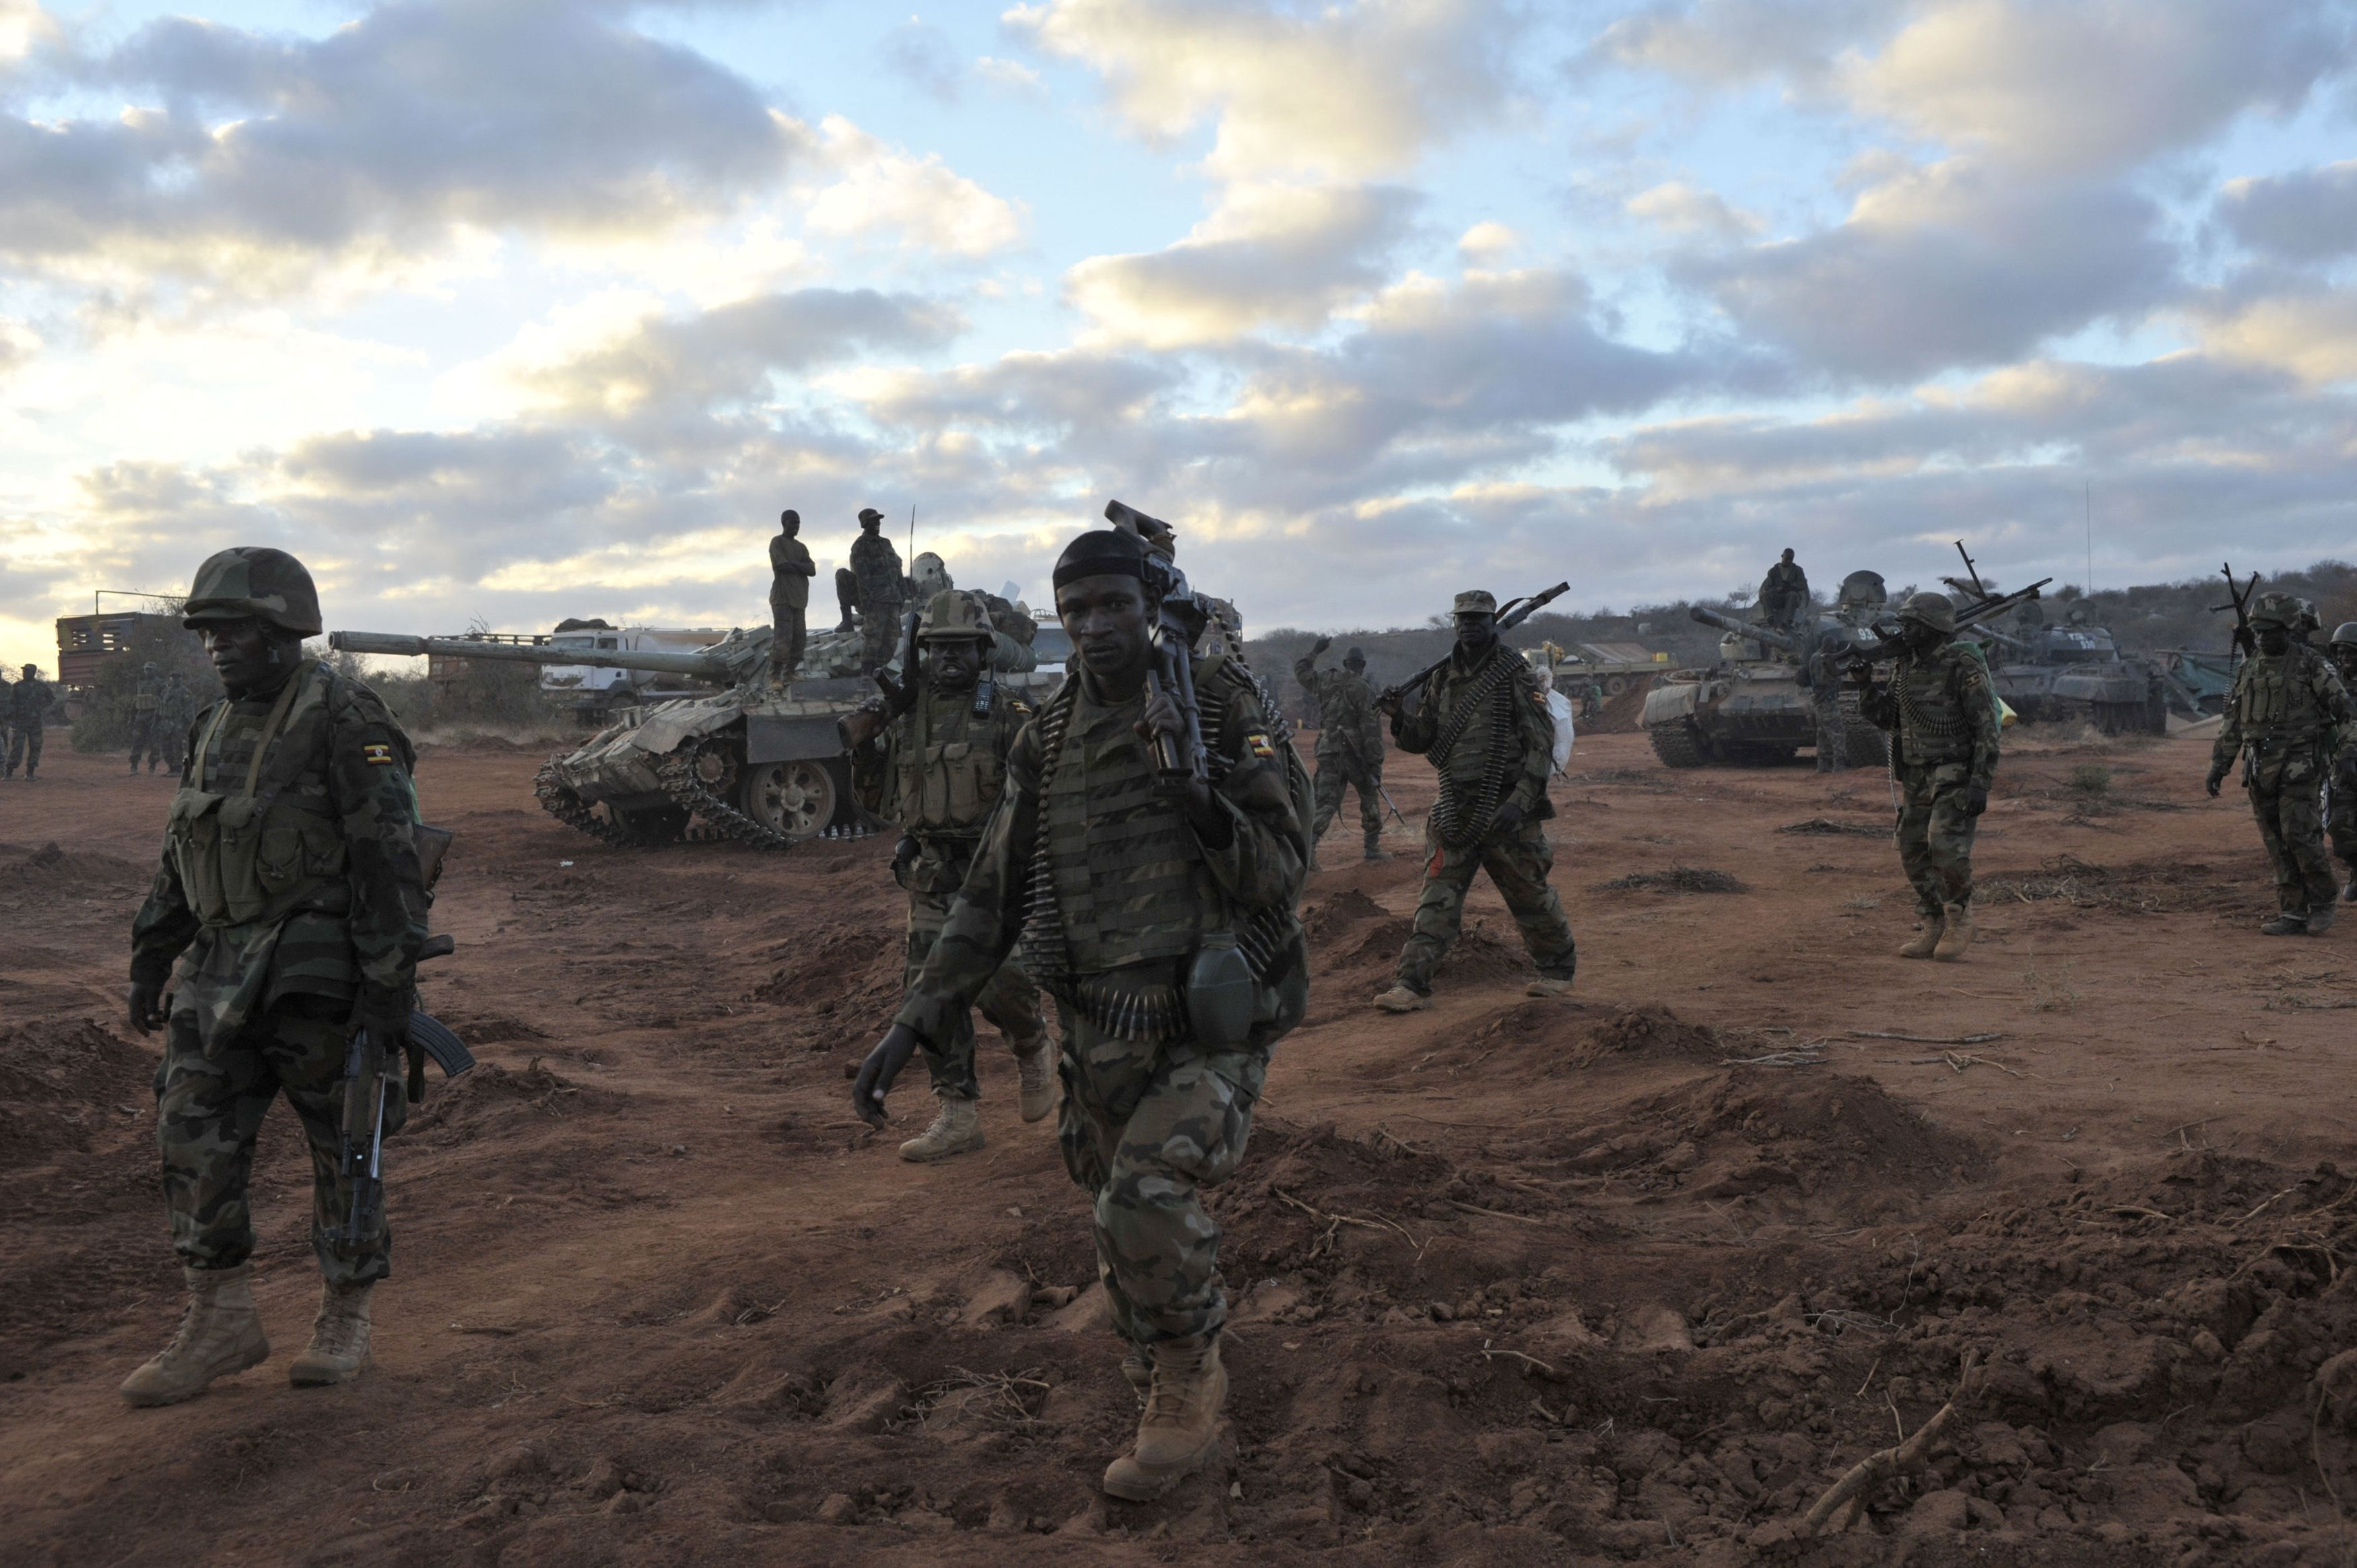 Ugandan soldiers, operating under the African Union Mission in Somalia (AMISOM), march towards Buurhkaba from their former position in the town of Leego alongside members of the Somali National Army (SNA).?Photo by Reuters